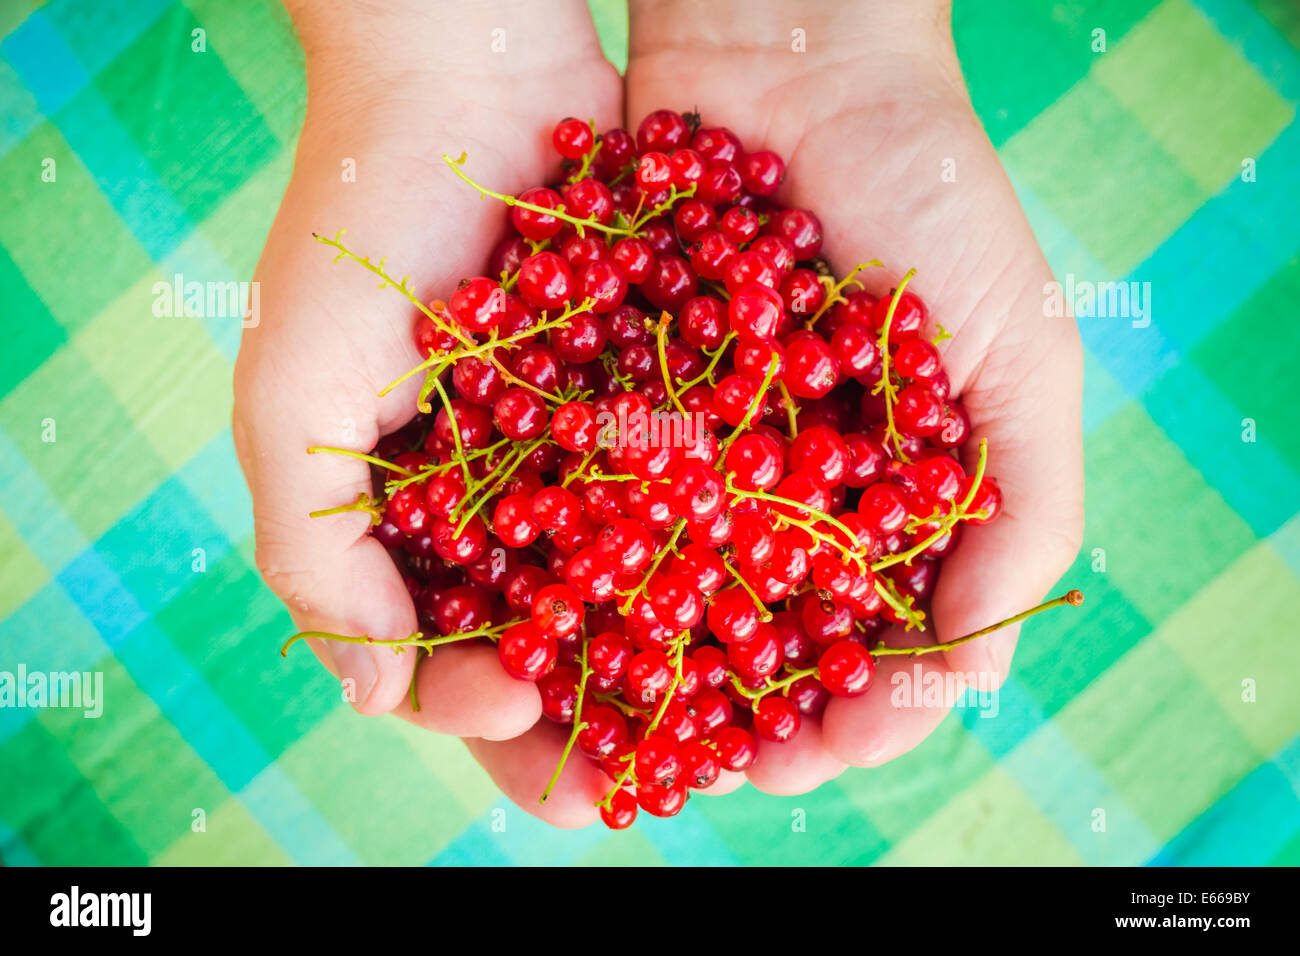 Male hands holding a red currant fruit fresh air - Stock Image